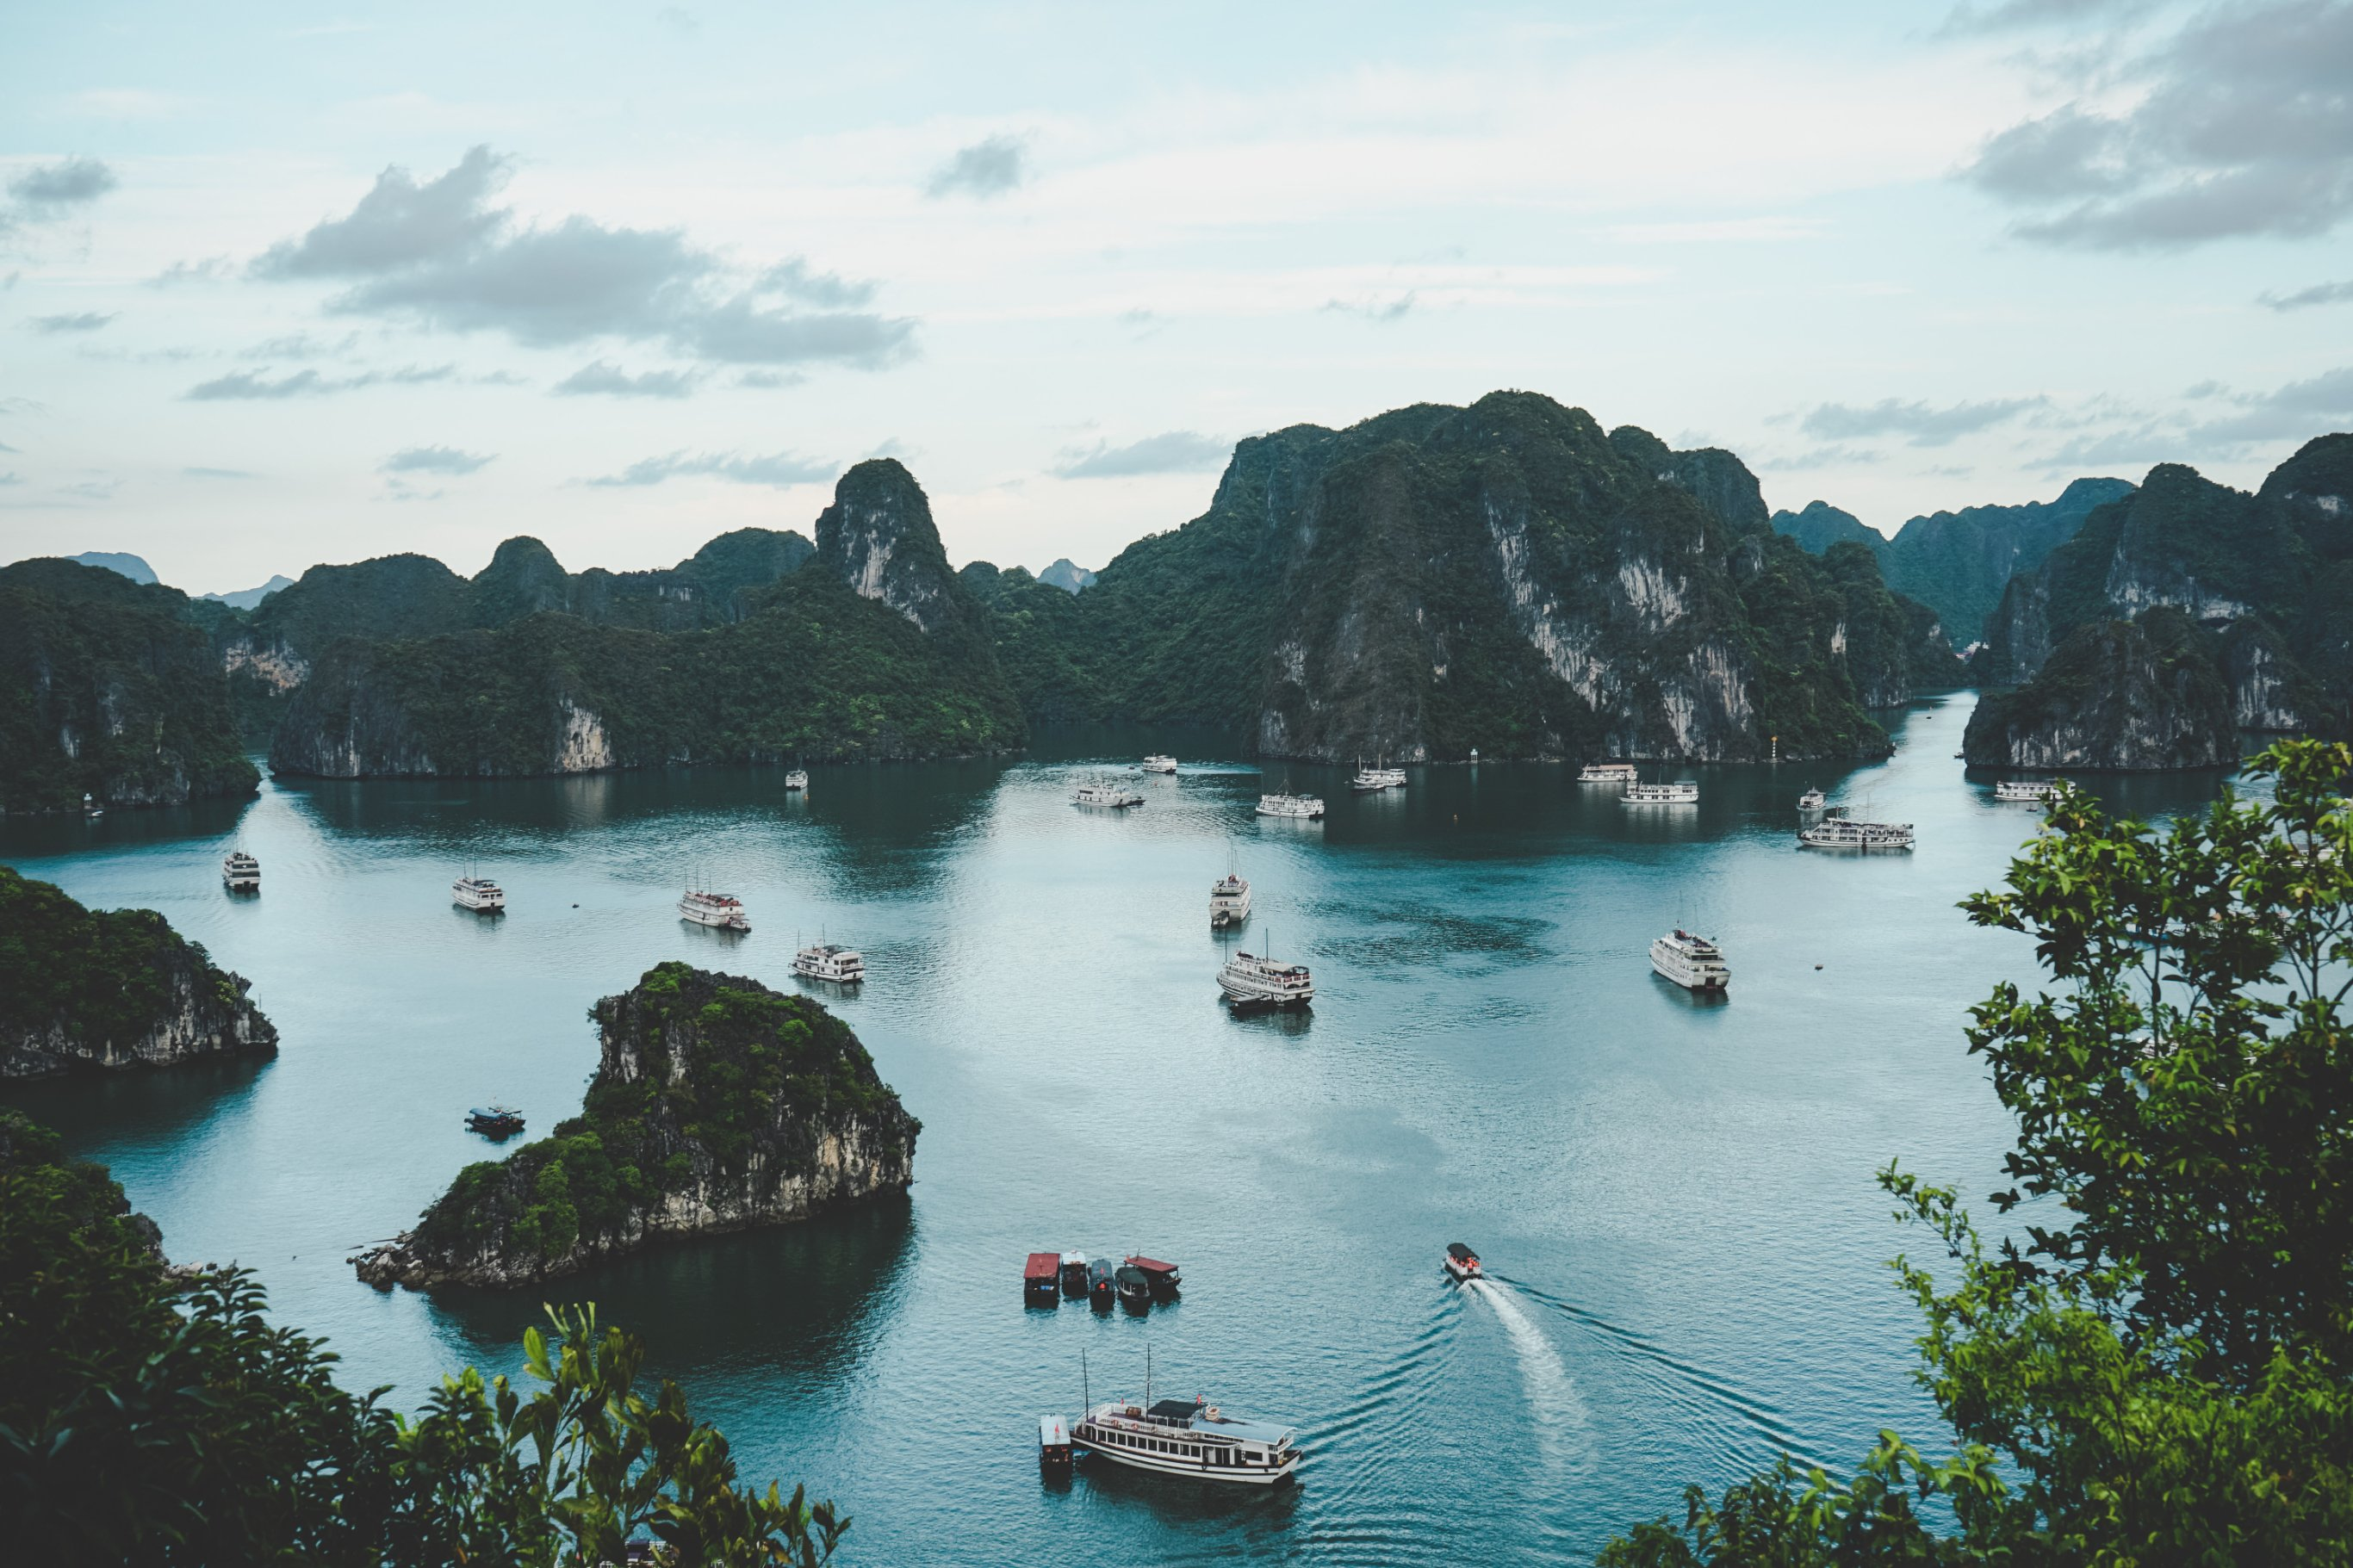 1-Day On Halong Bay - Vietnam Itinerary